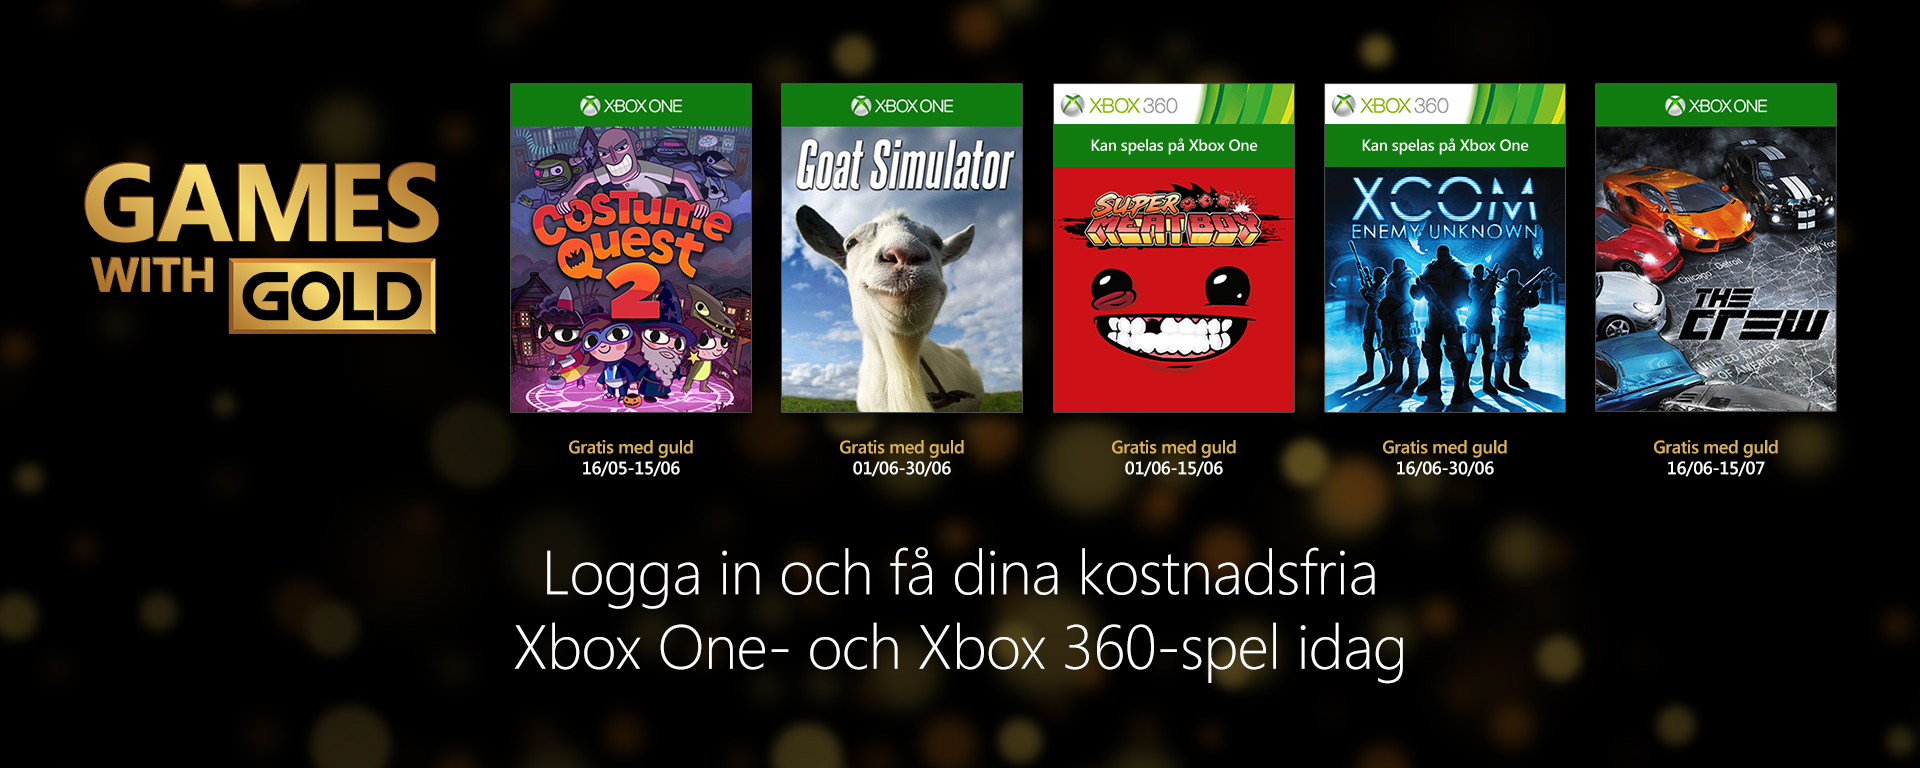 how to get xbox live gold xbox 360